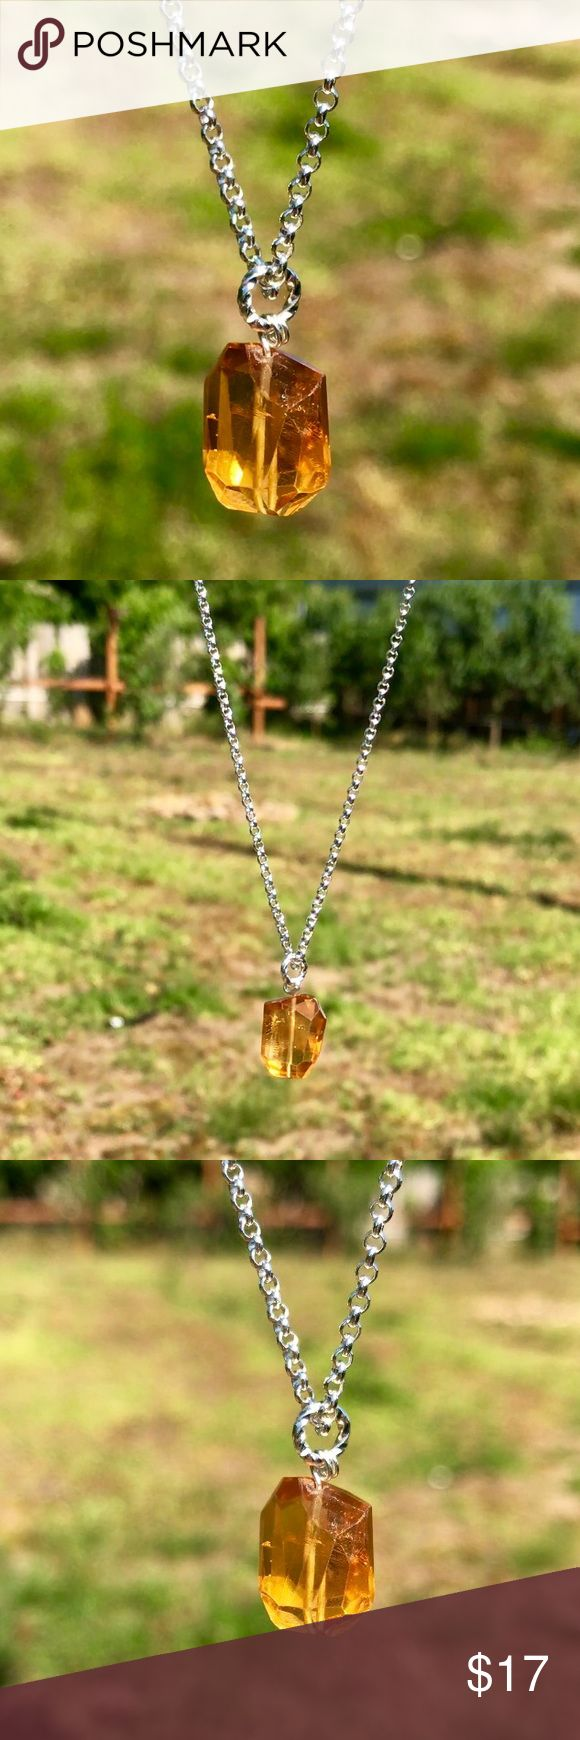 Authentic Citrine Gemstone Necklace! Authentic Citrine Gemstone Necklace! (Bundle 3 listings & Save with my Discount!) #10 NOTE: Anyone asking me to contact/email them outside of Poshmark for any reason will be reported & blocked. Jewelry Necklaces